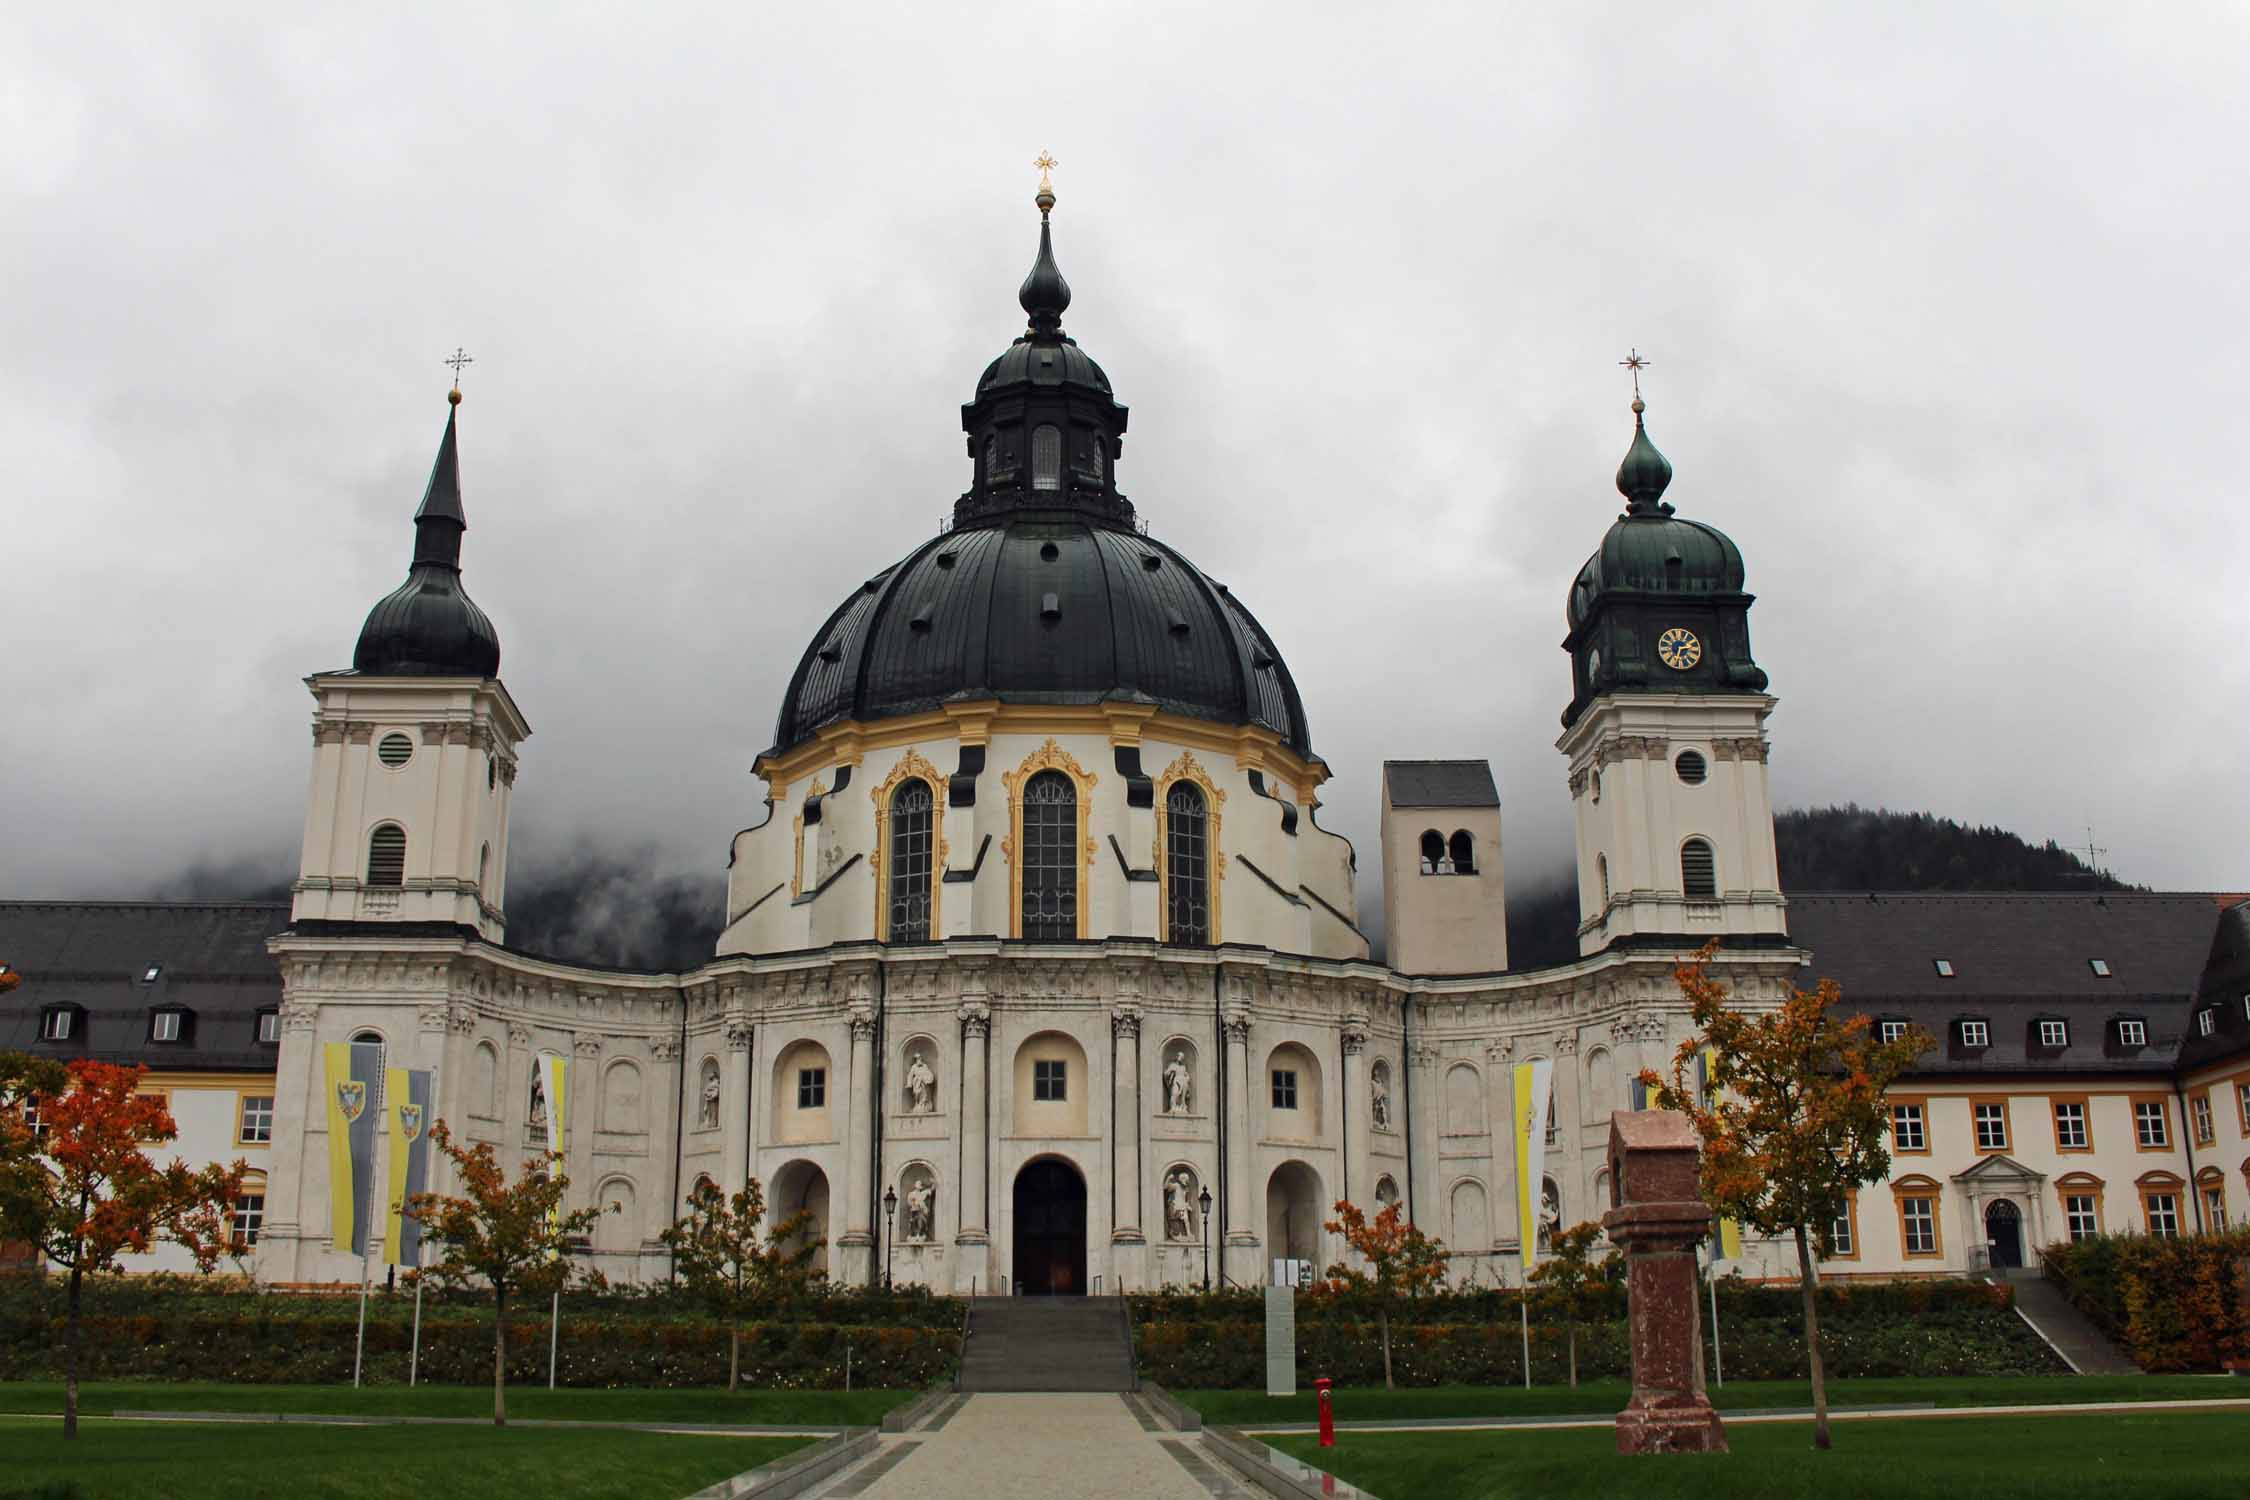 The Ettal abbey in Bavaria